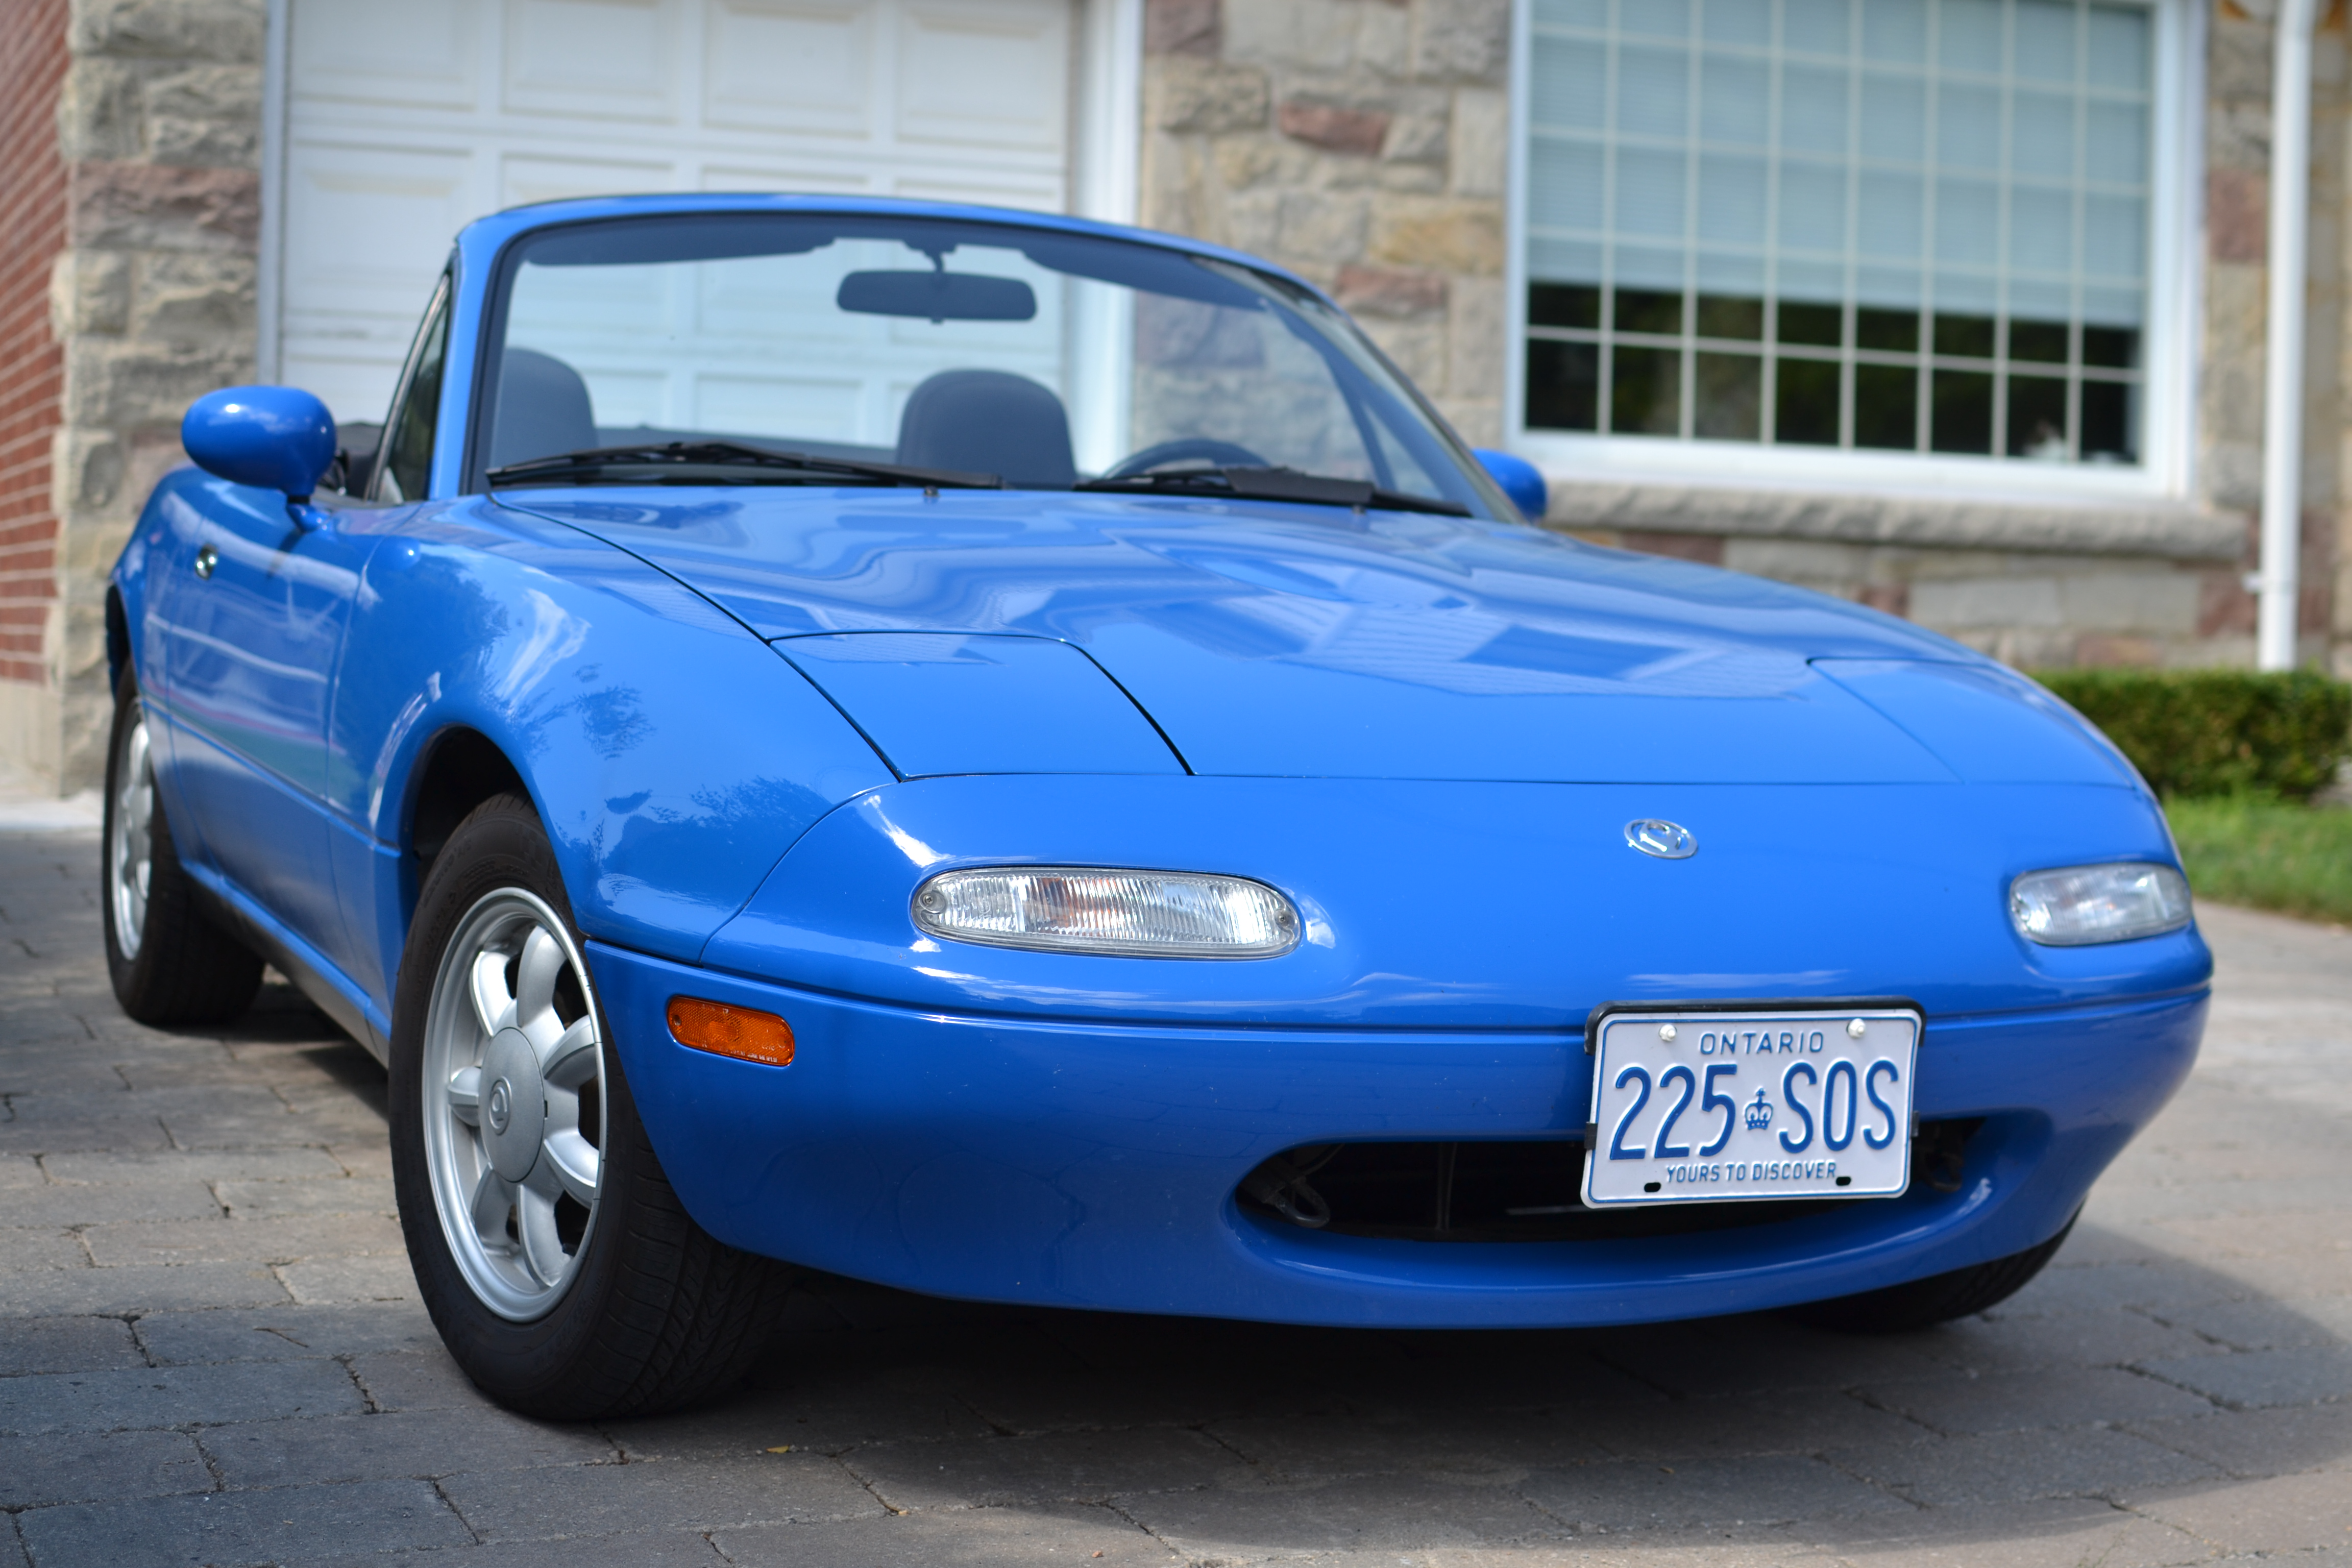 My perfect Mazda MX-5 Miata  3DTuning - probably the best